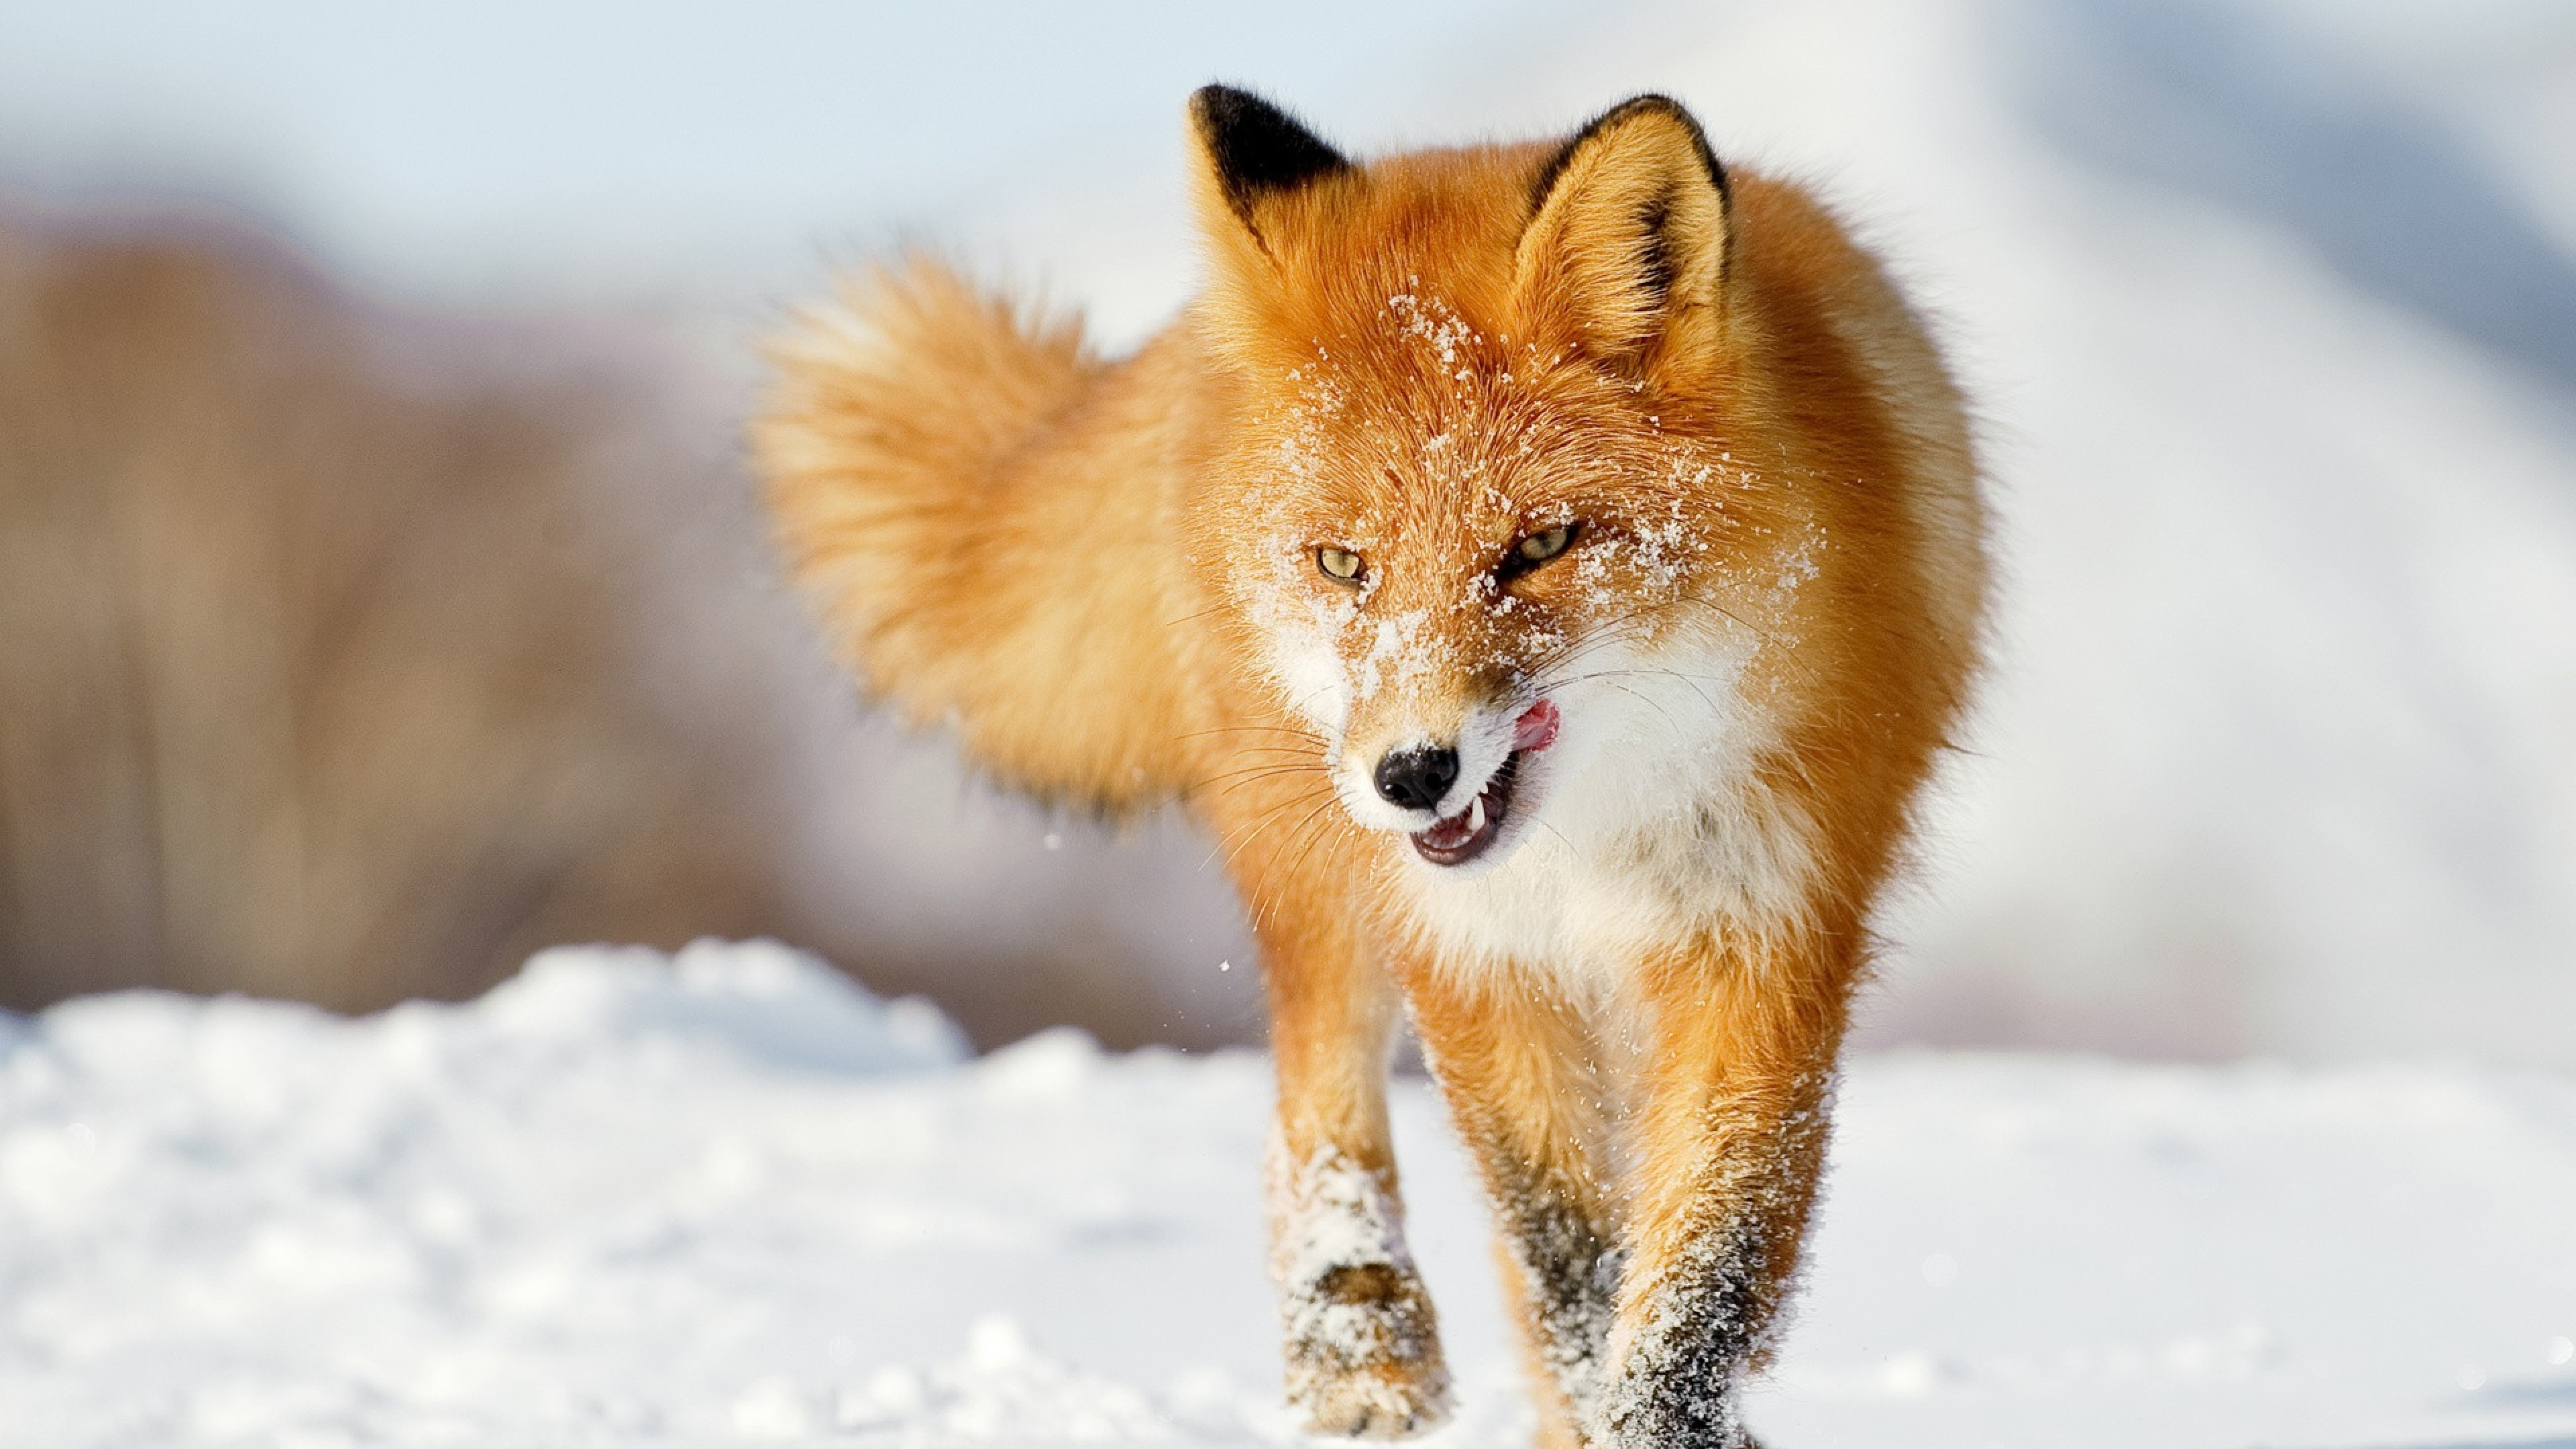 fox_snow_running_winter_67252_3840x2160